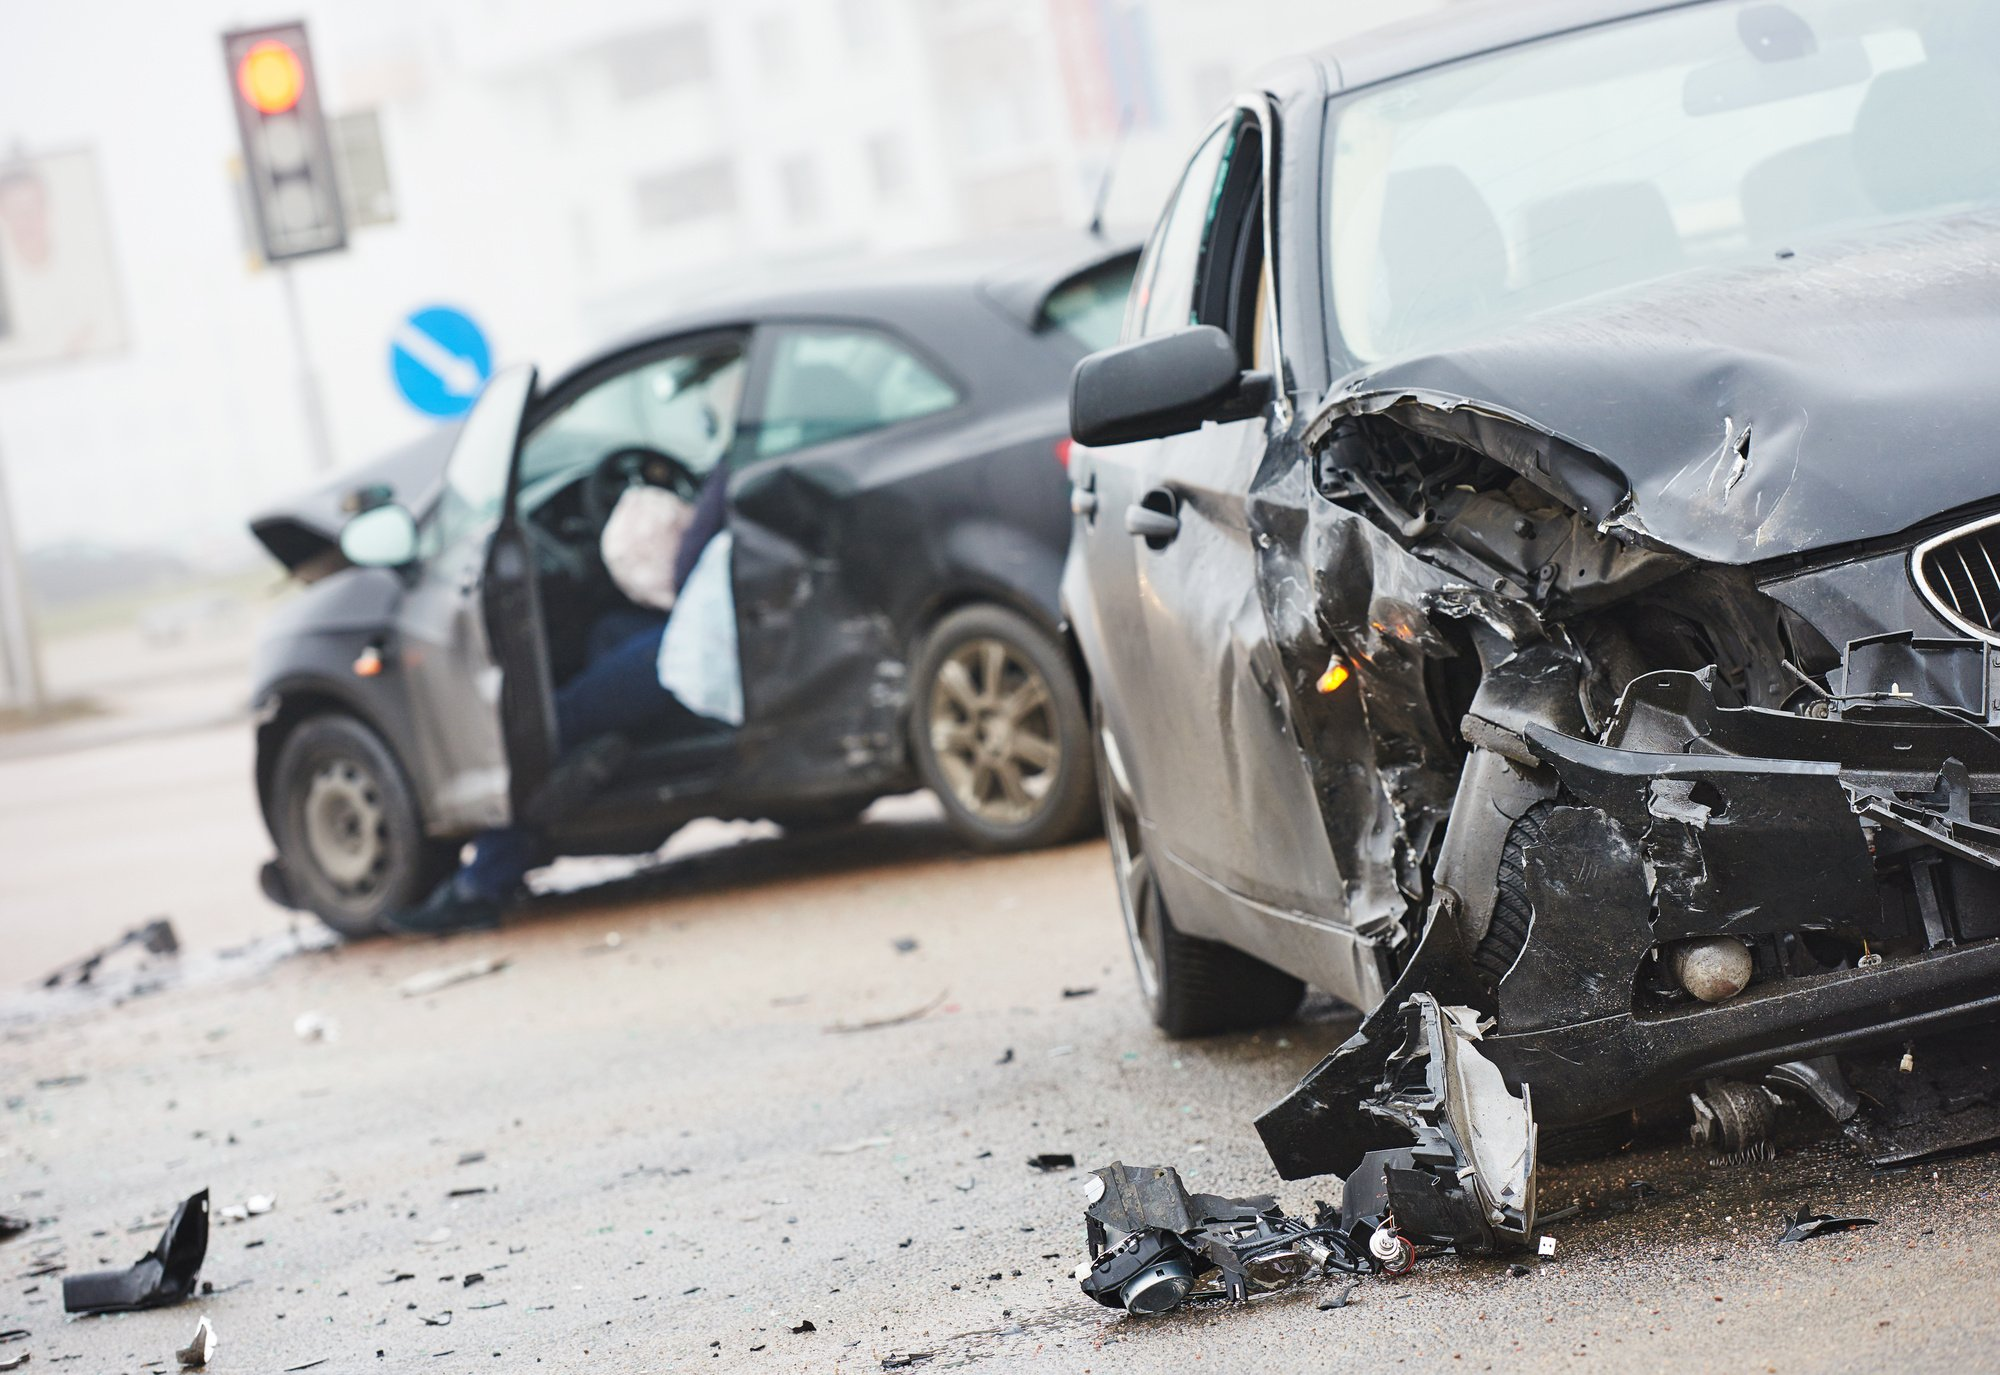 Should You Always Go To The Hospital After A Car Accident In New